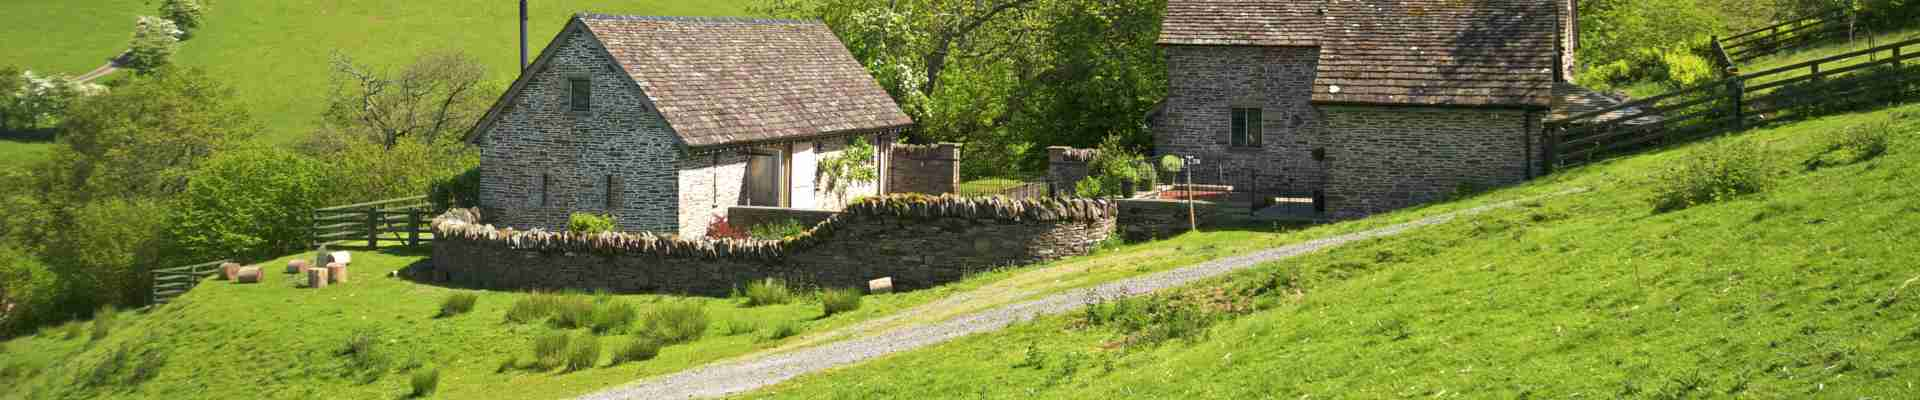 Cottages in the Welsh countryside